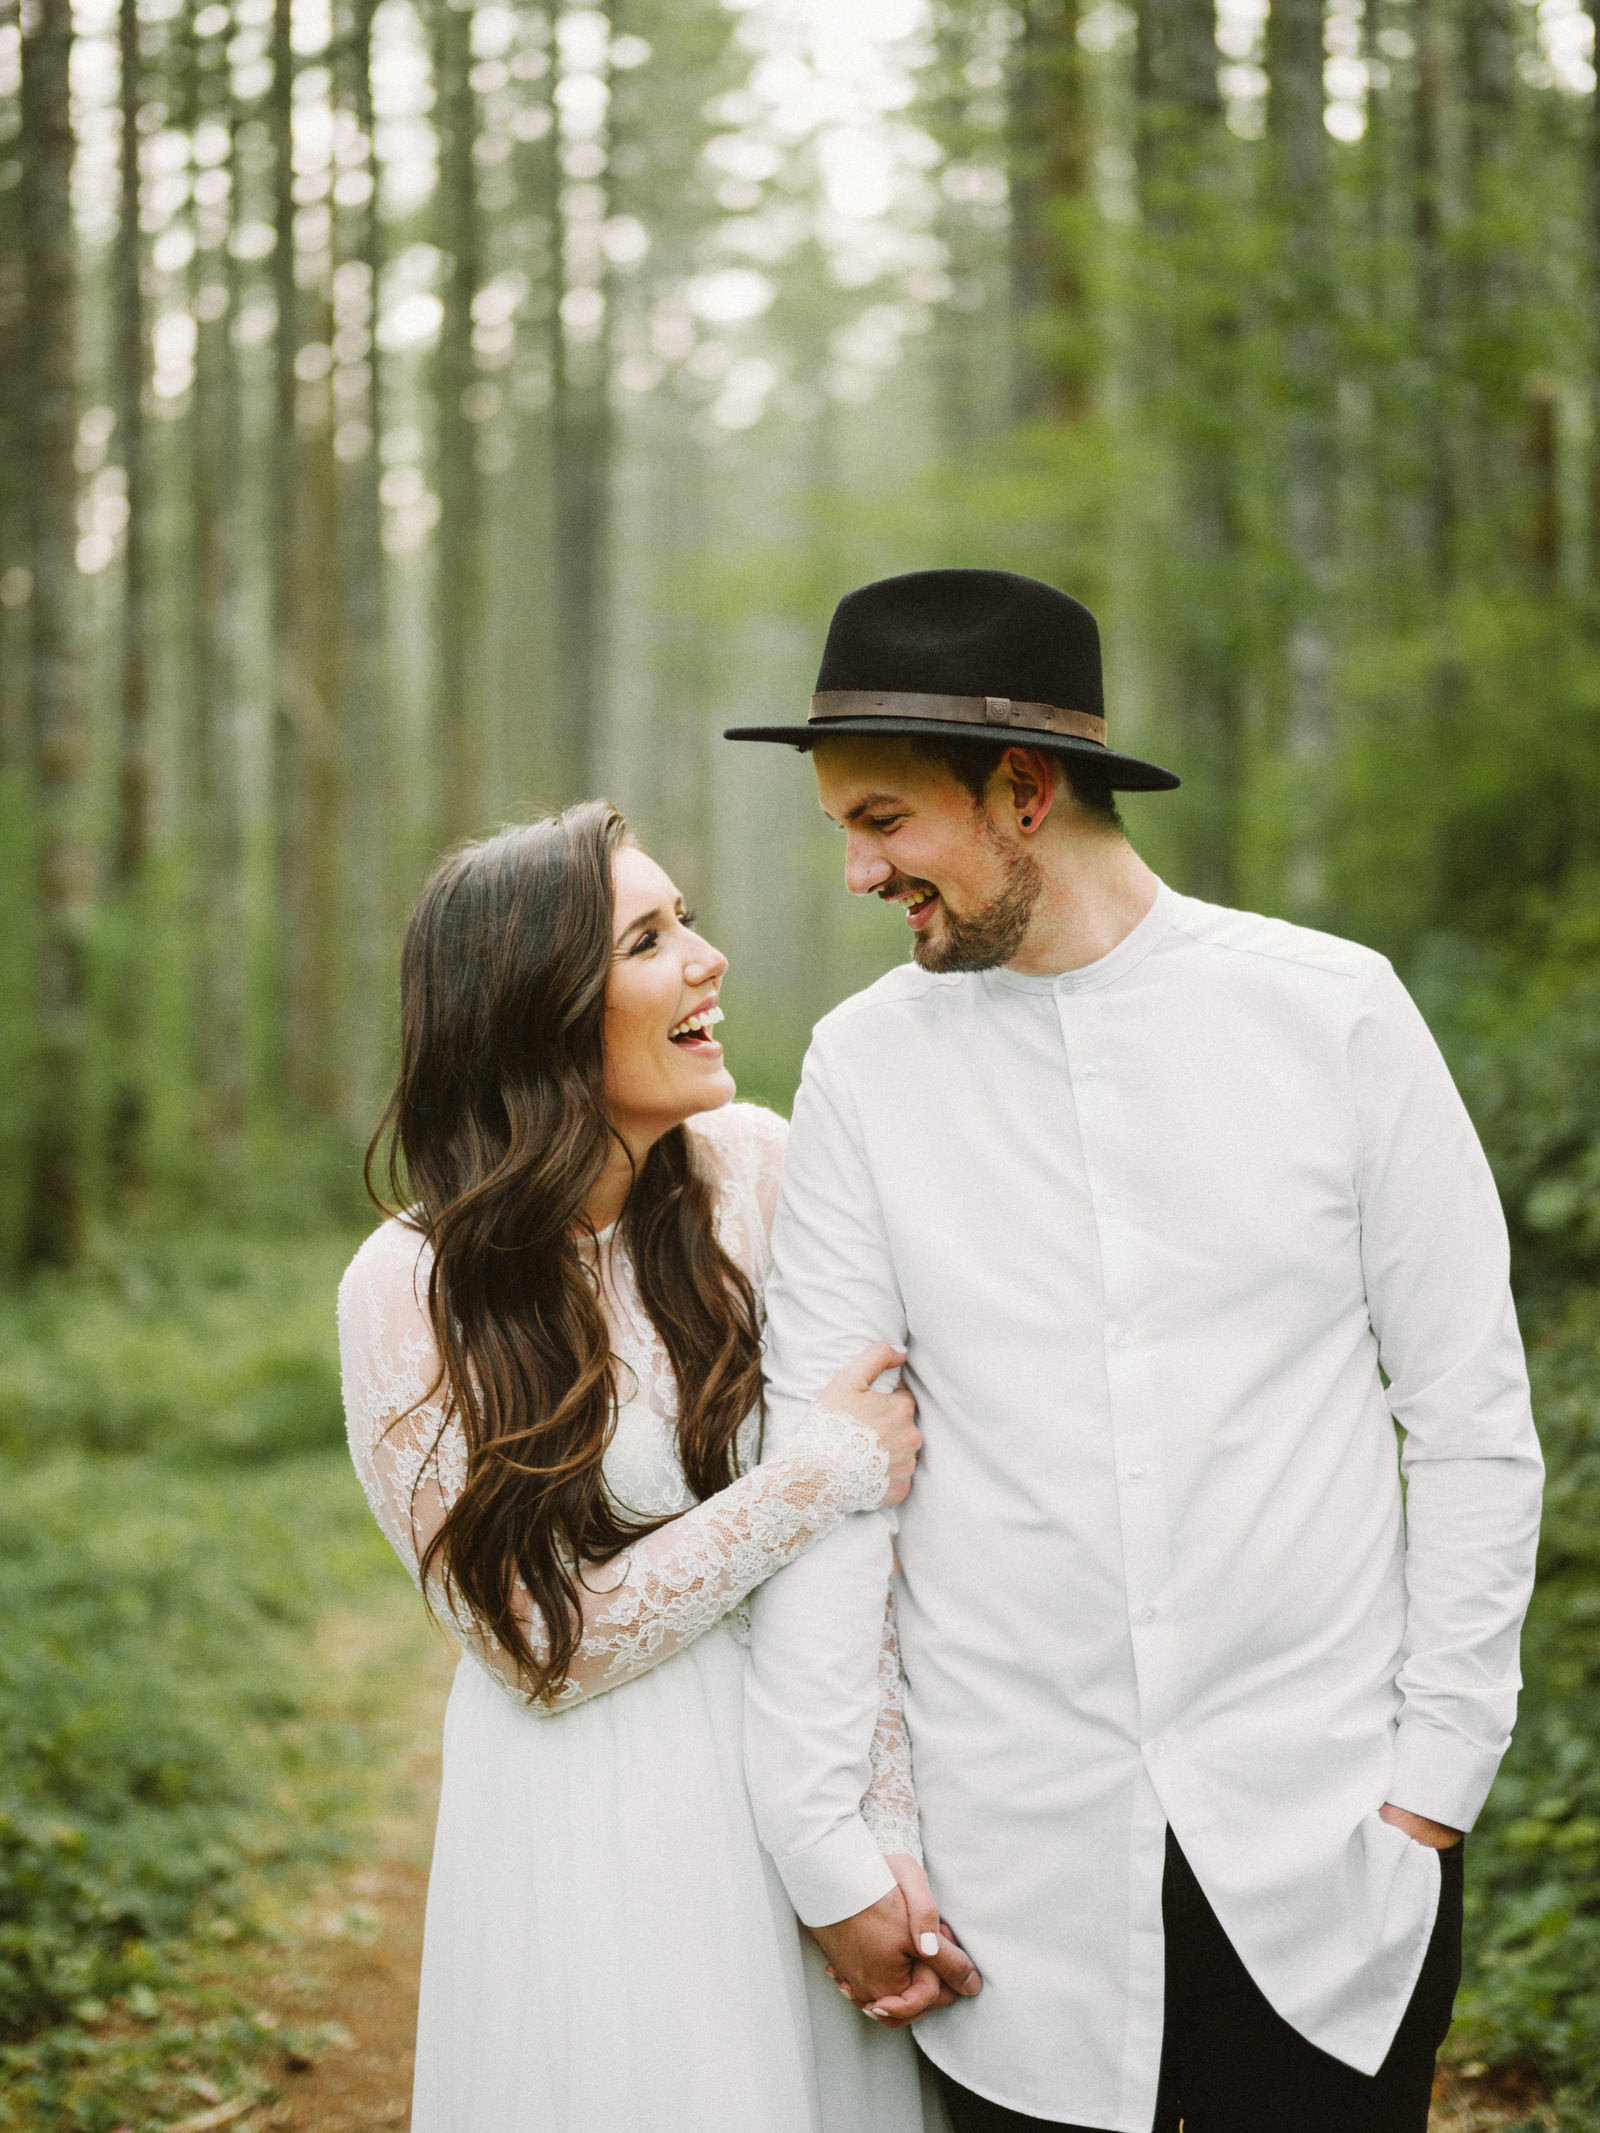 athena-and-camron-seattle-elopement-wedding-benj-haisch-rattlesnake-lake-christian-couple-goals16